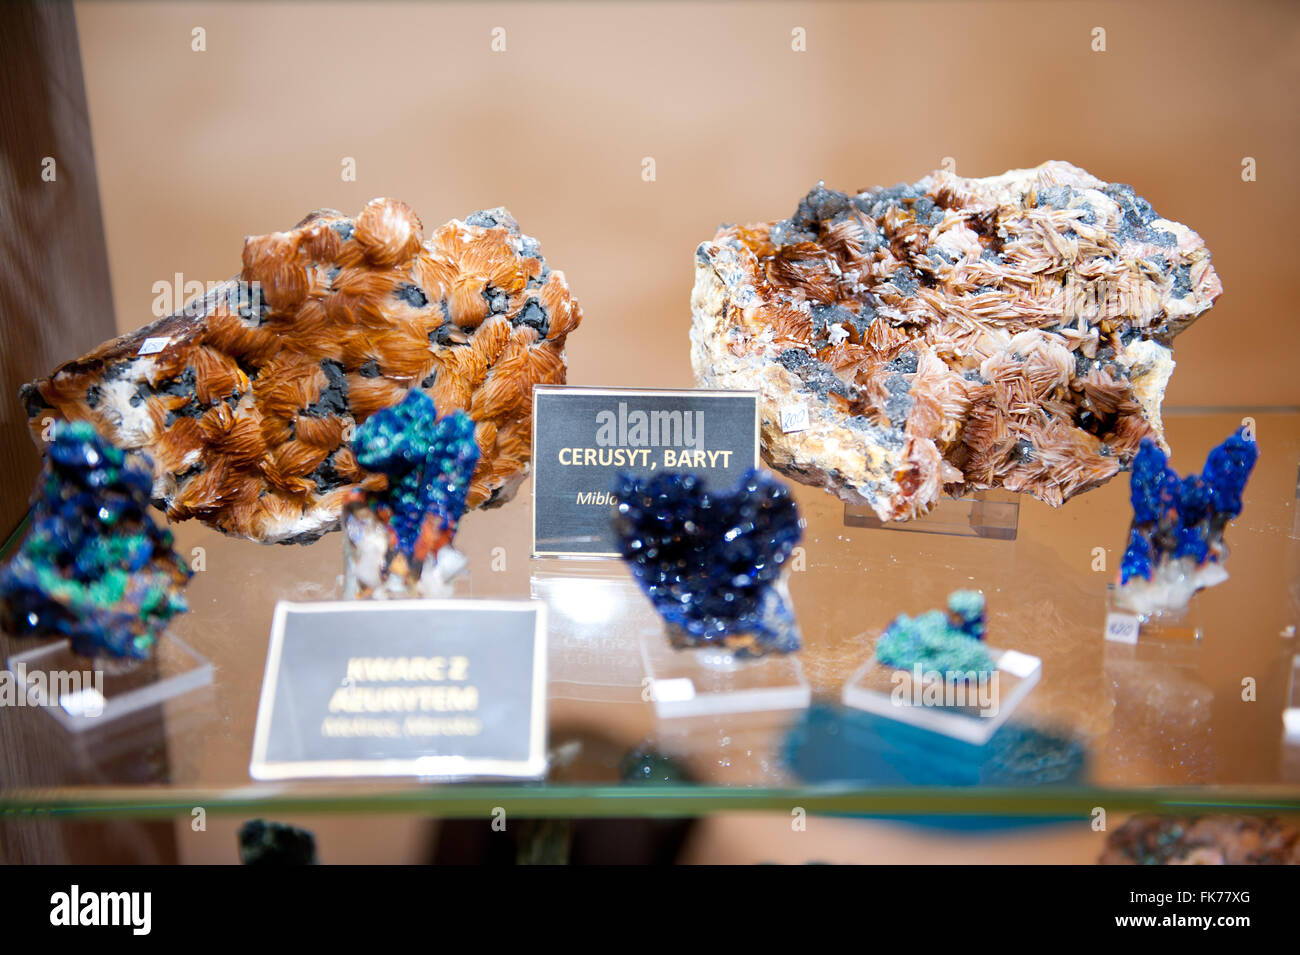 Cerussite and baryte mineral gemstones, pieces assortment at Warsaw Mineral Expo 2016, 5th March, VI edition event - Stock Image